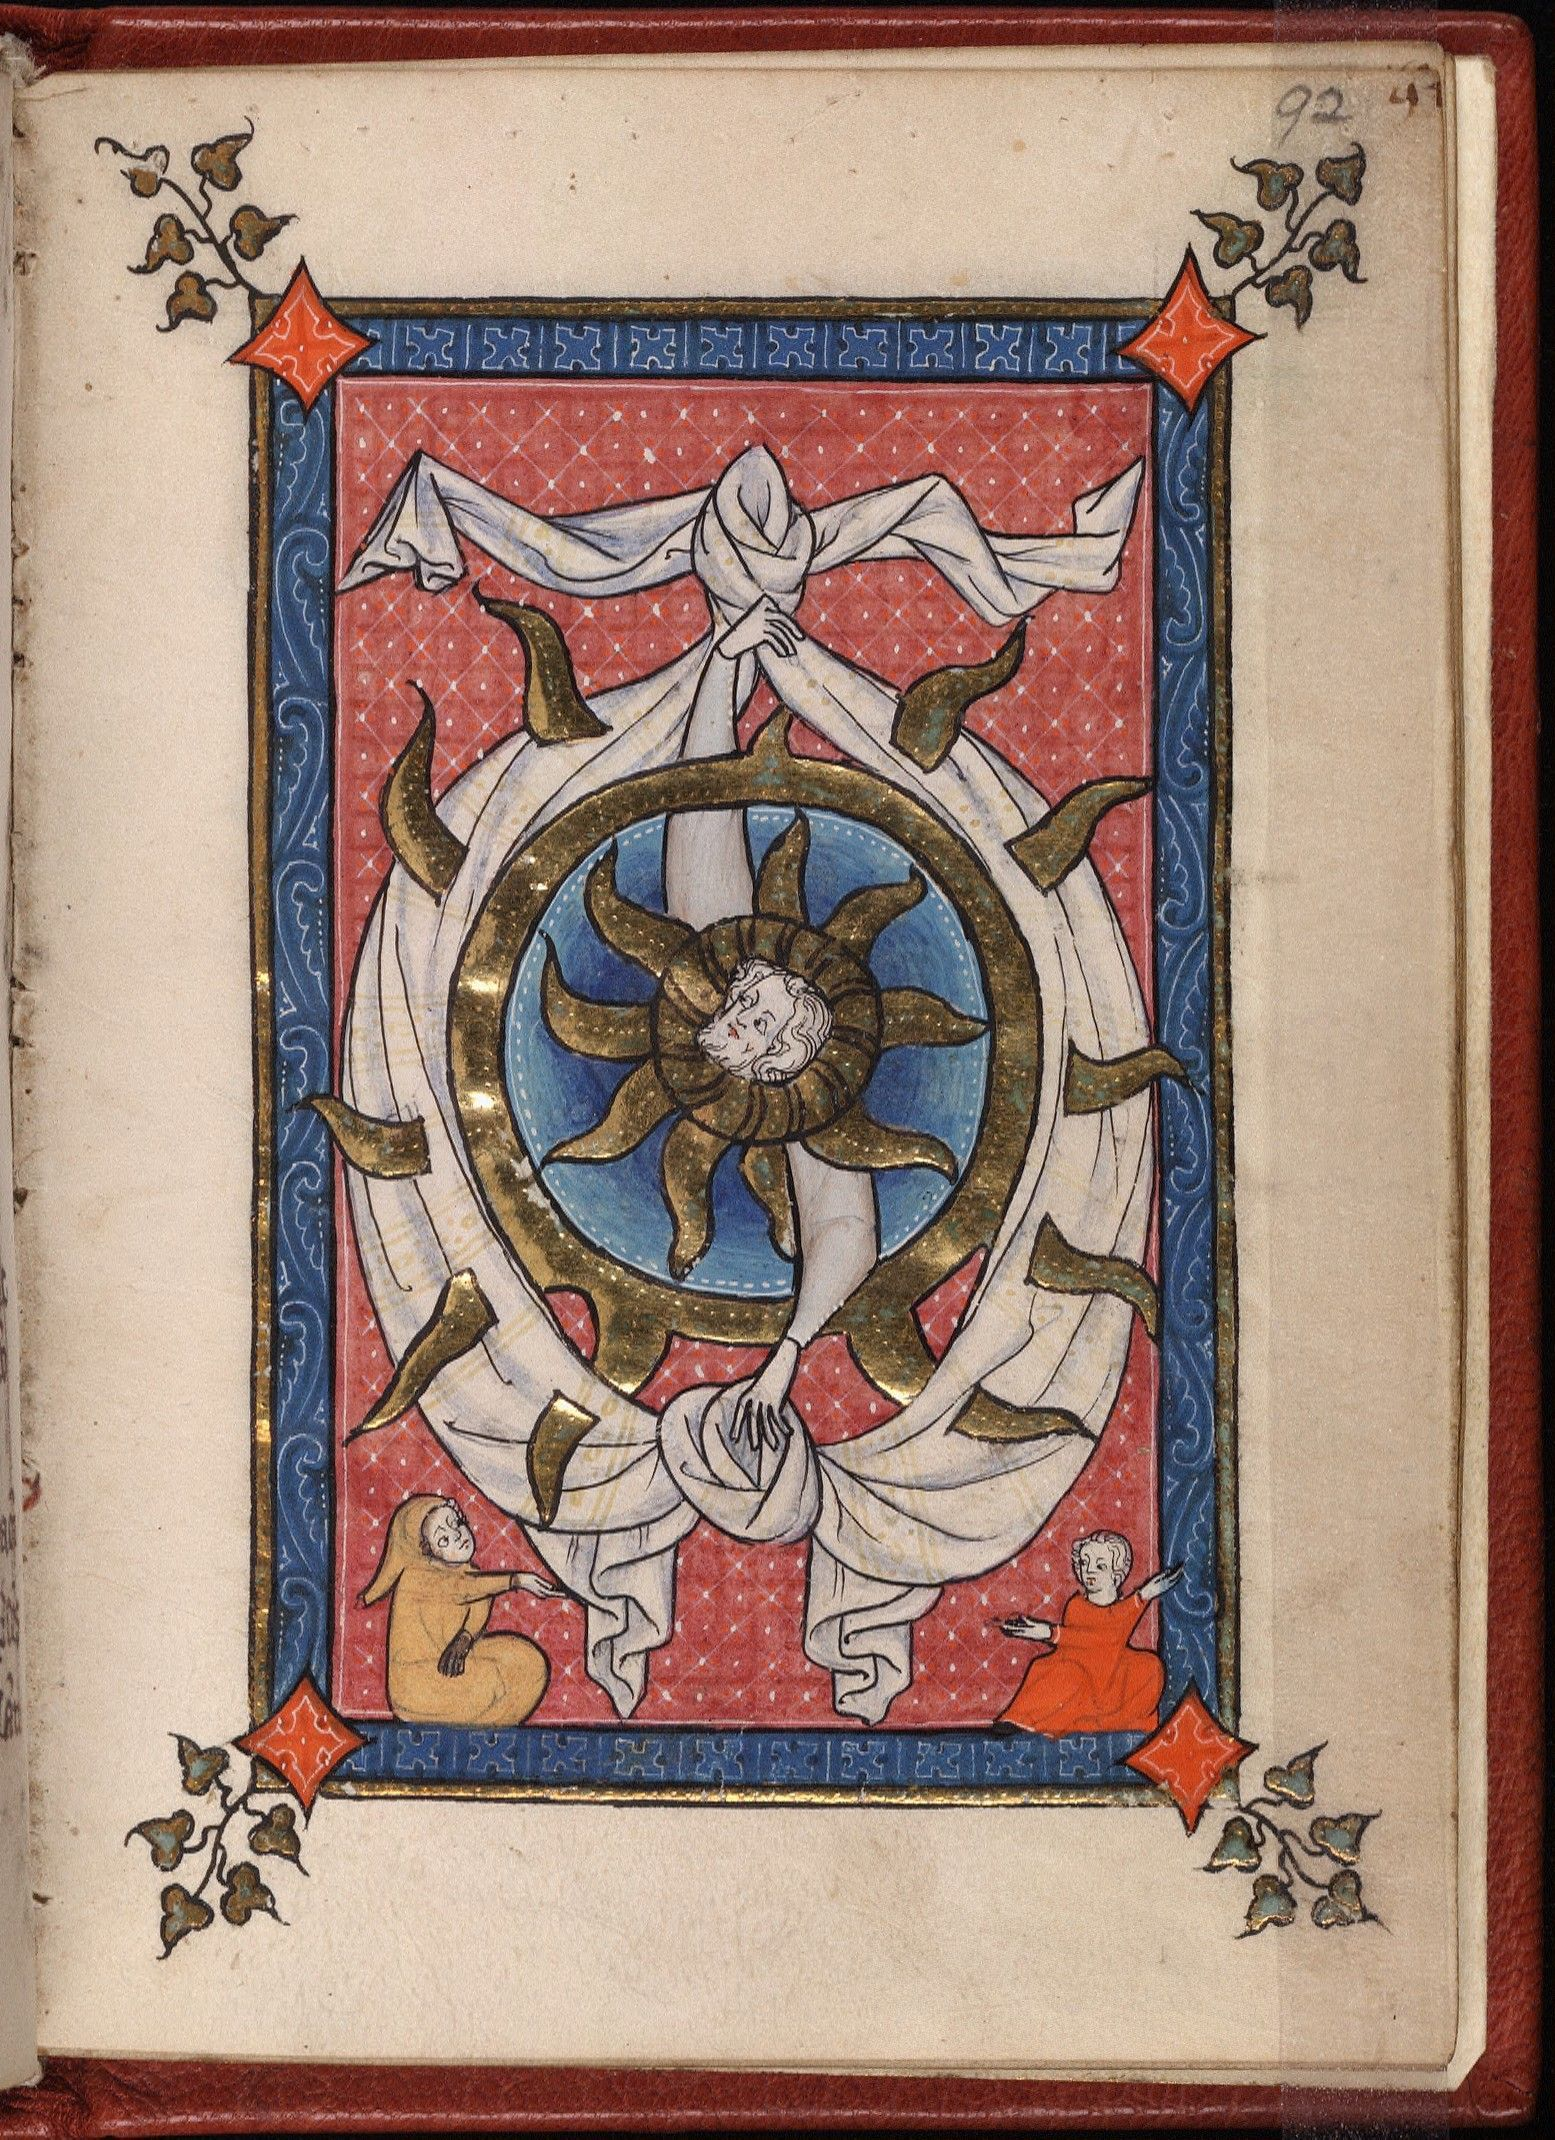 Rothschild Canticles 92r